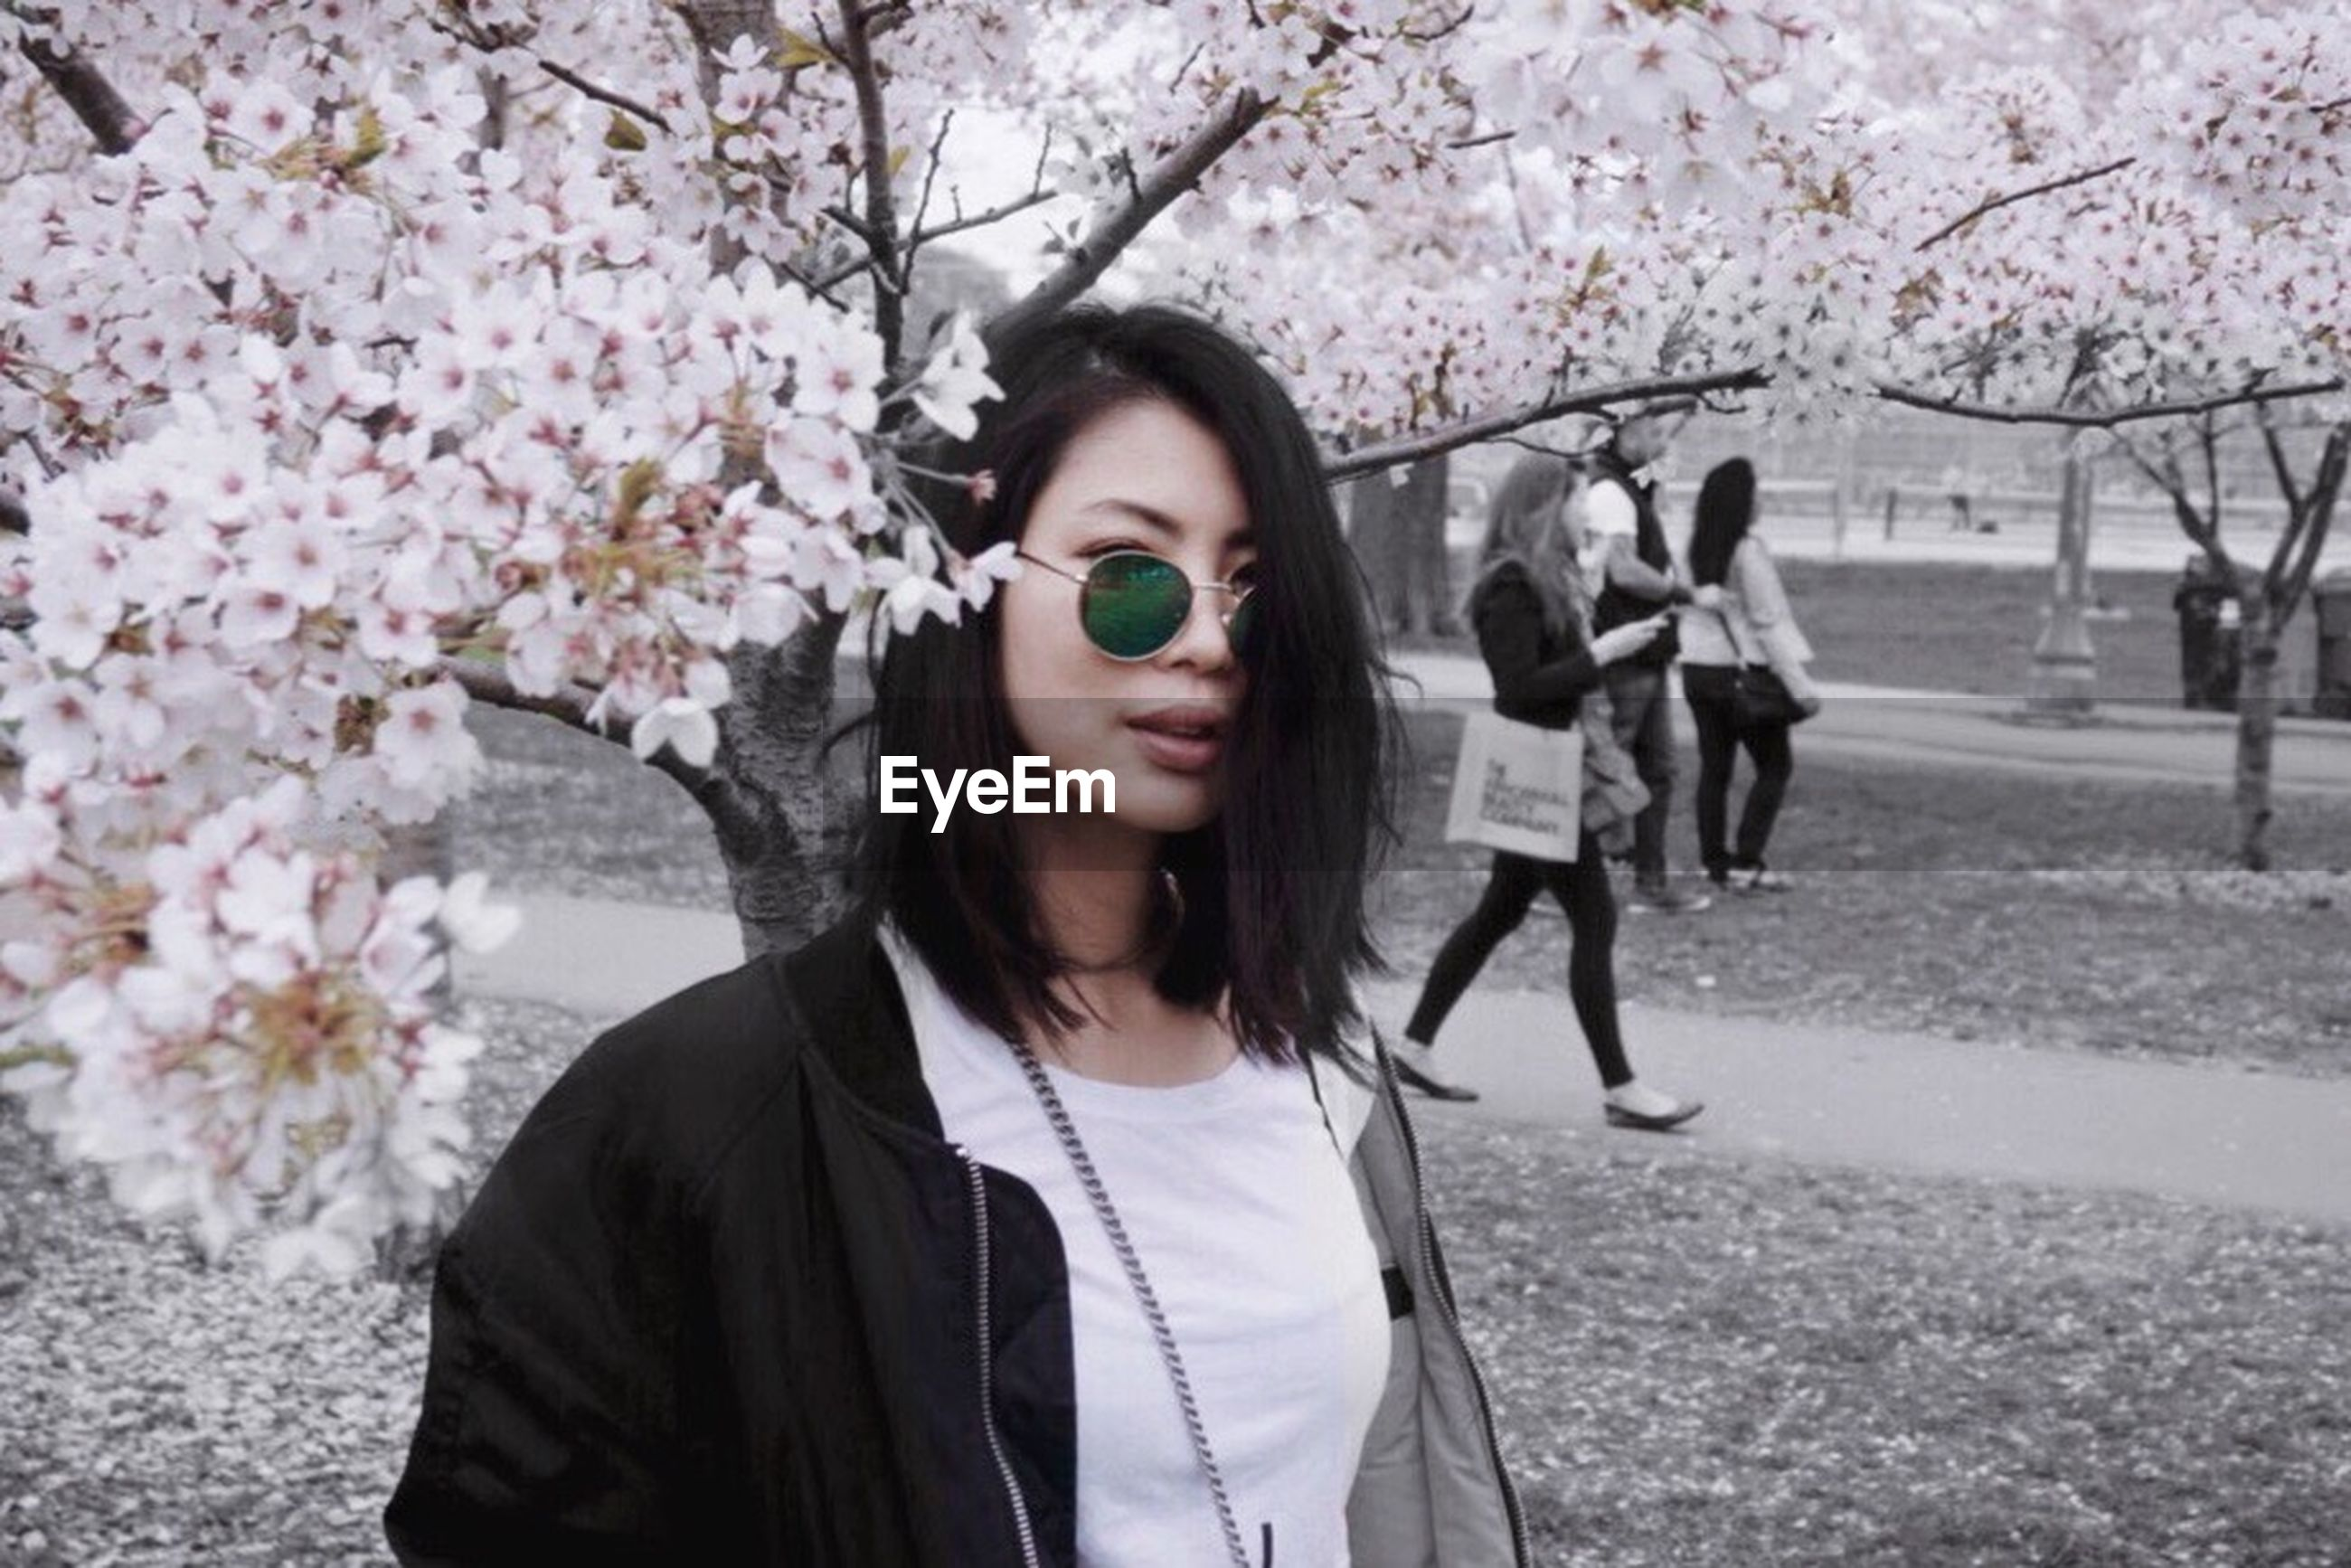 flower, tree, one person, front view, blossom, young adult, eyeglasses, day, outdoors, real people, springtime, growth, one young woman only, branch, young women, fragility, beauty in nature, freshness, nature, one woman only, close-up, adult, adults only, people